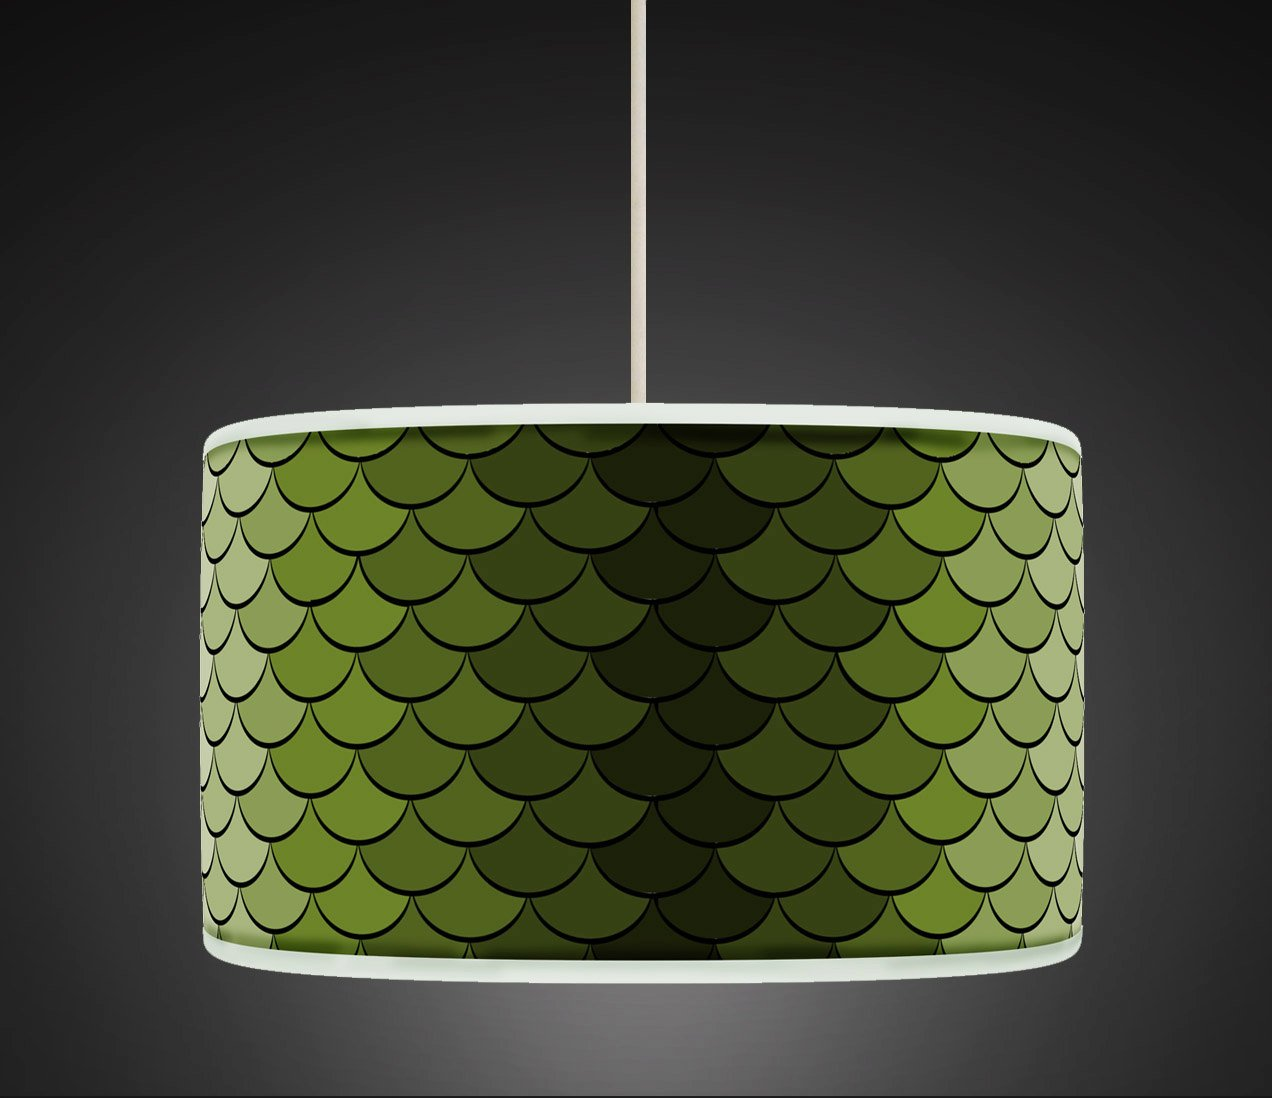 30cm green retro geometric handmade giclee style printed fabric lamp 30cm green retro geometric handmade giclee style printed fabric lamp drum lampshade floor or ceiling pendant light shade 458 amazon lighting aloadofball Image collections